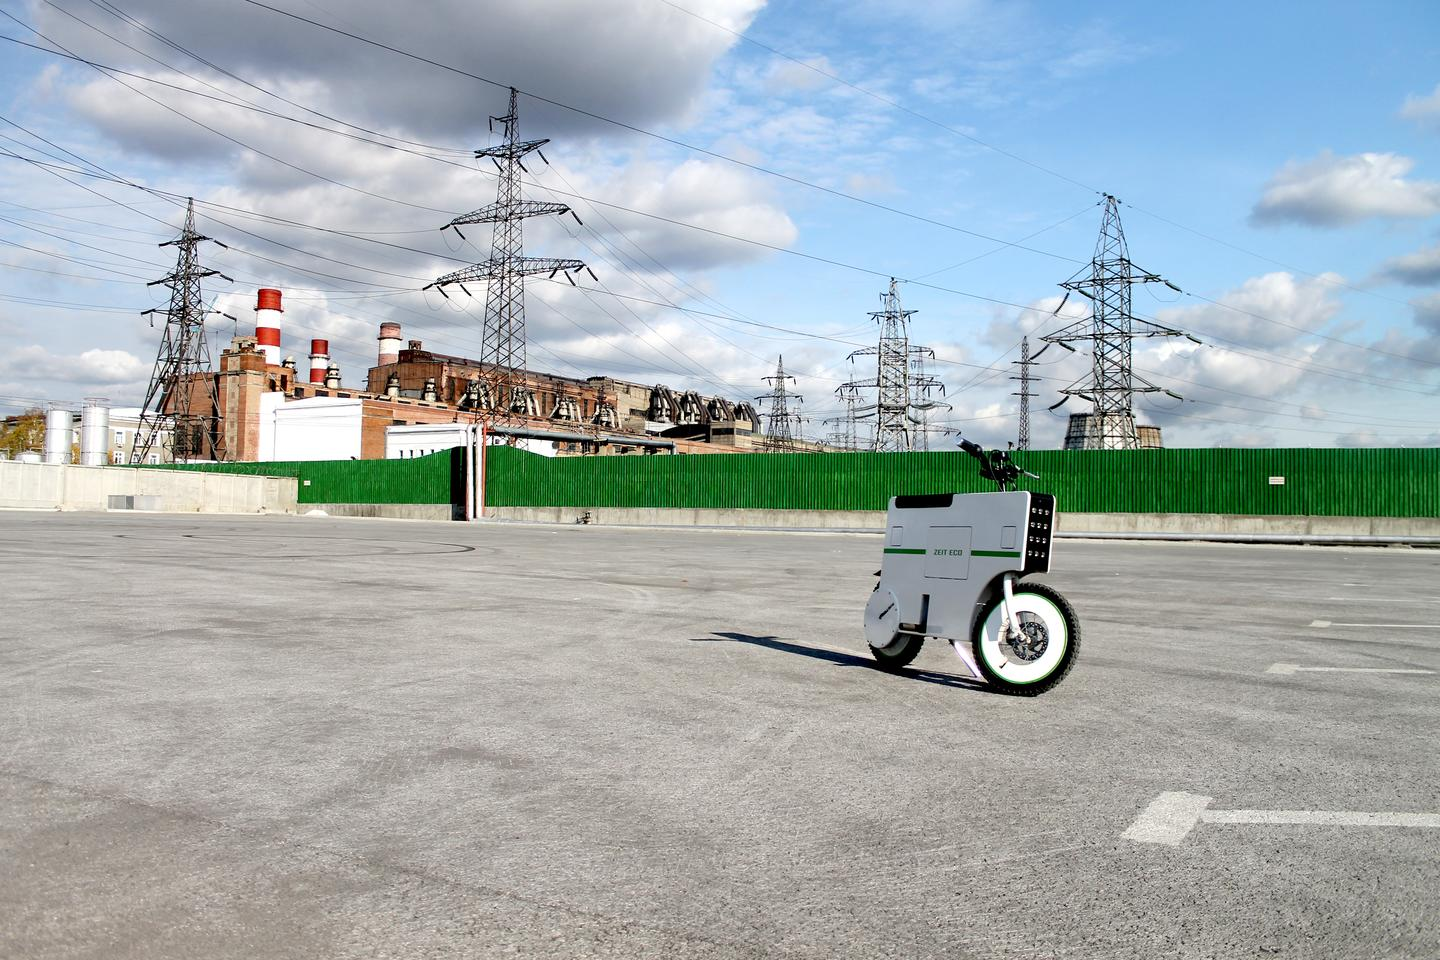 Post-Kickstarter, the e-scooter is expected to cost somewhere in the region of $2,000